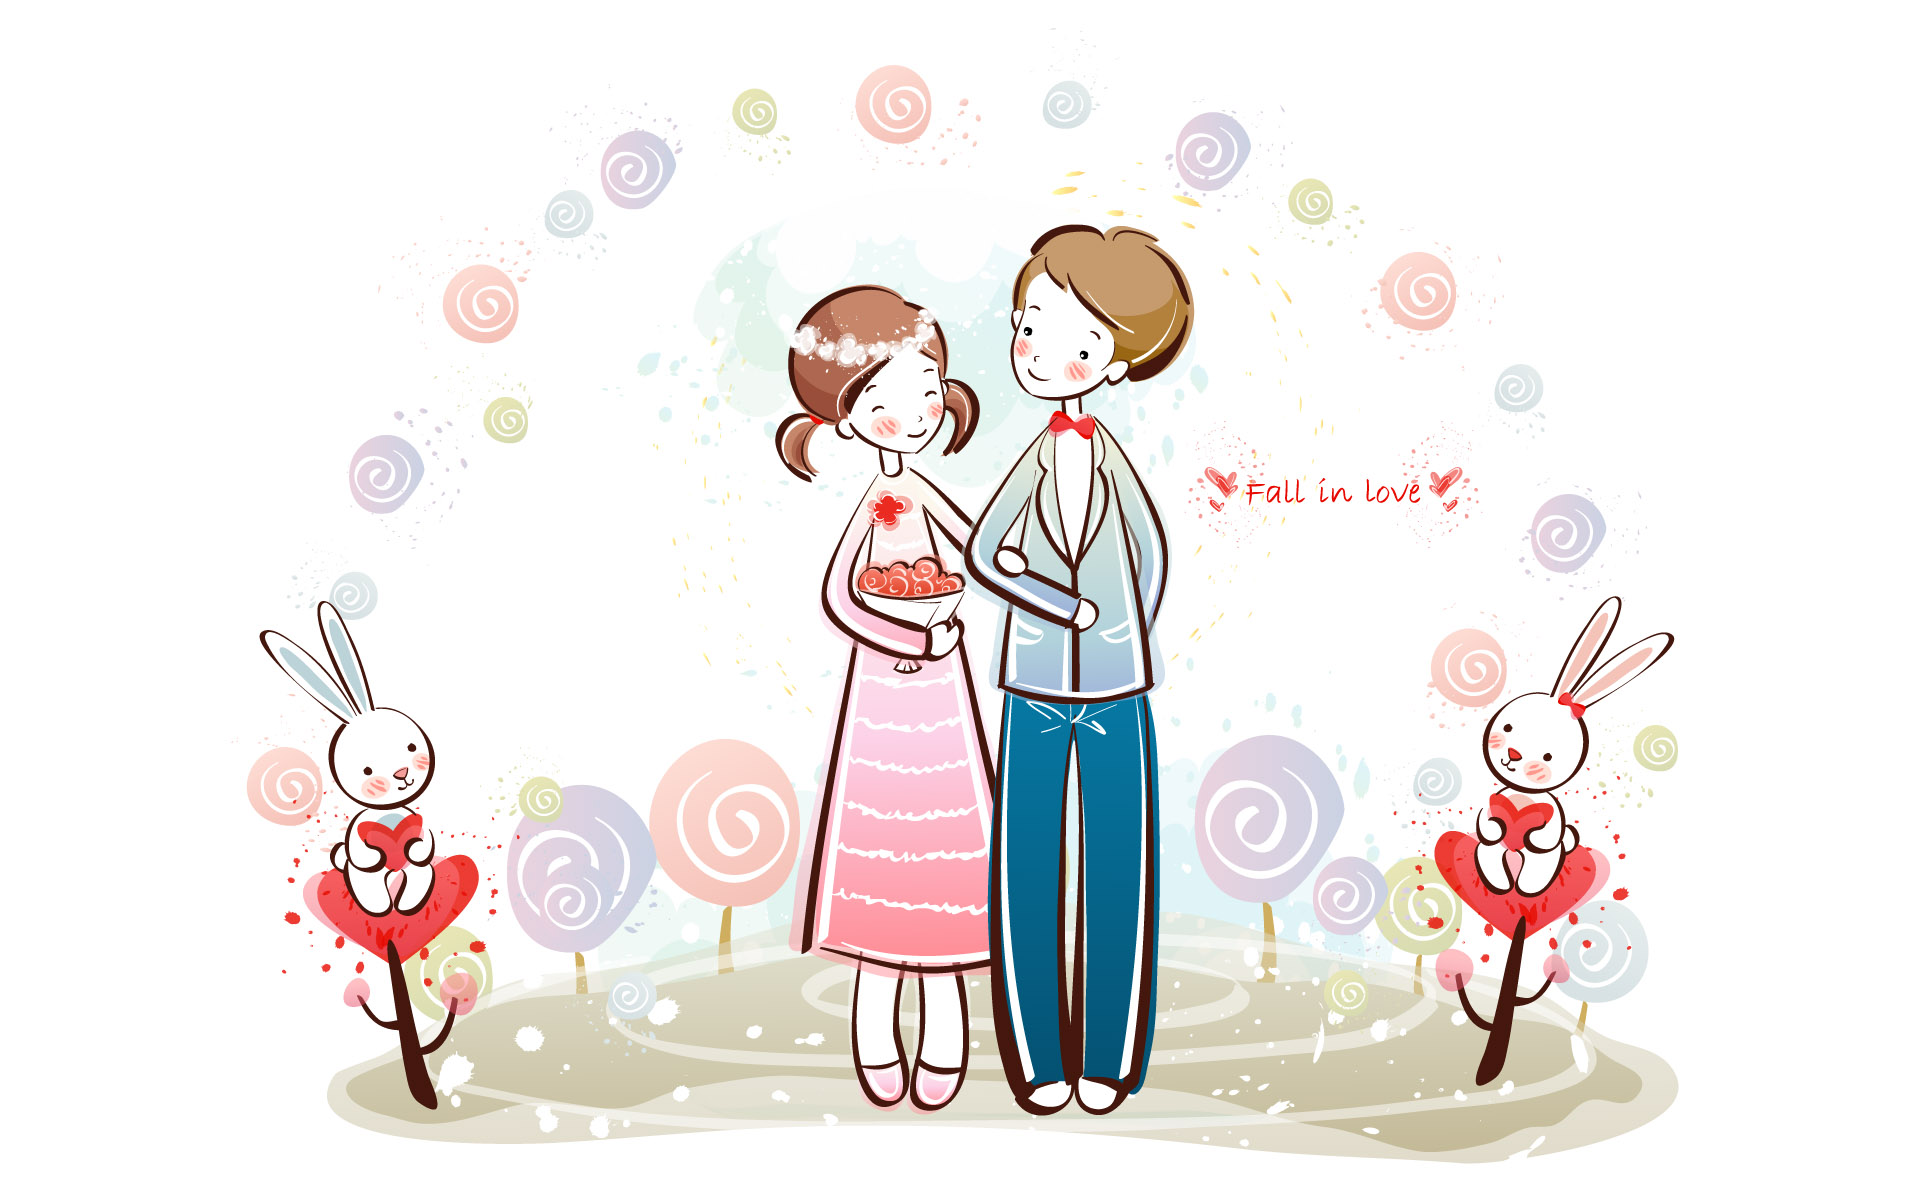 Sweet Love cartoon Wallpaper : Diantara Kita Bercinta